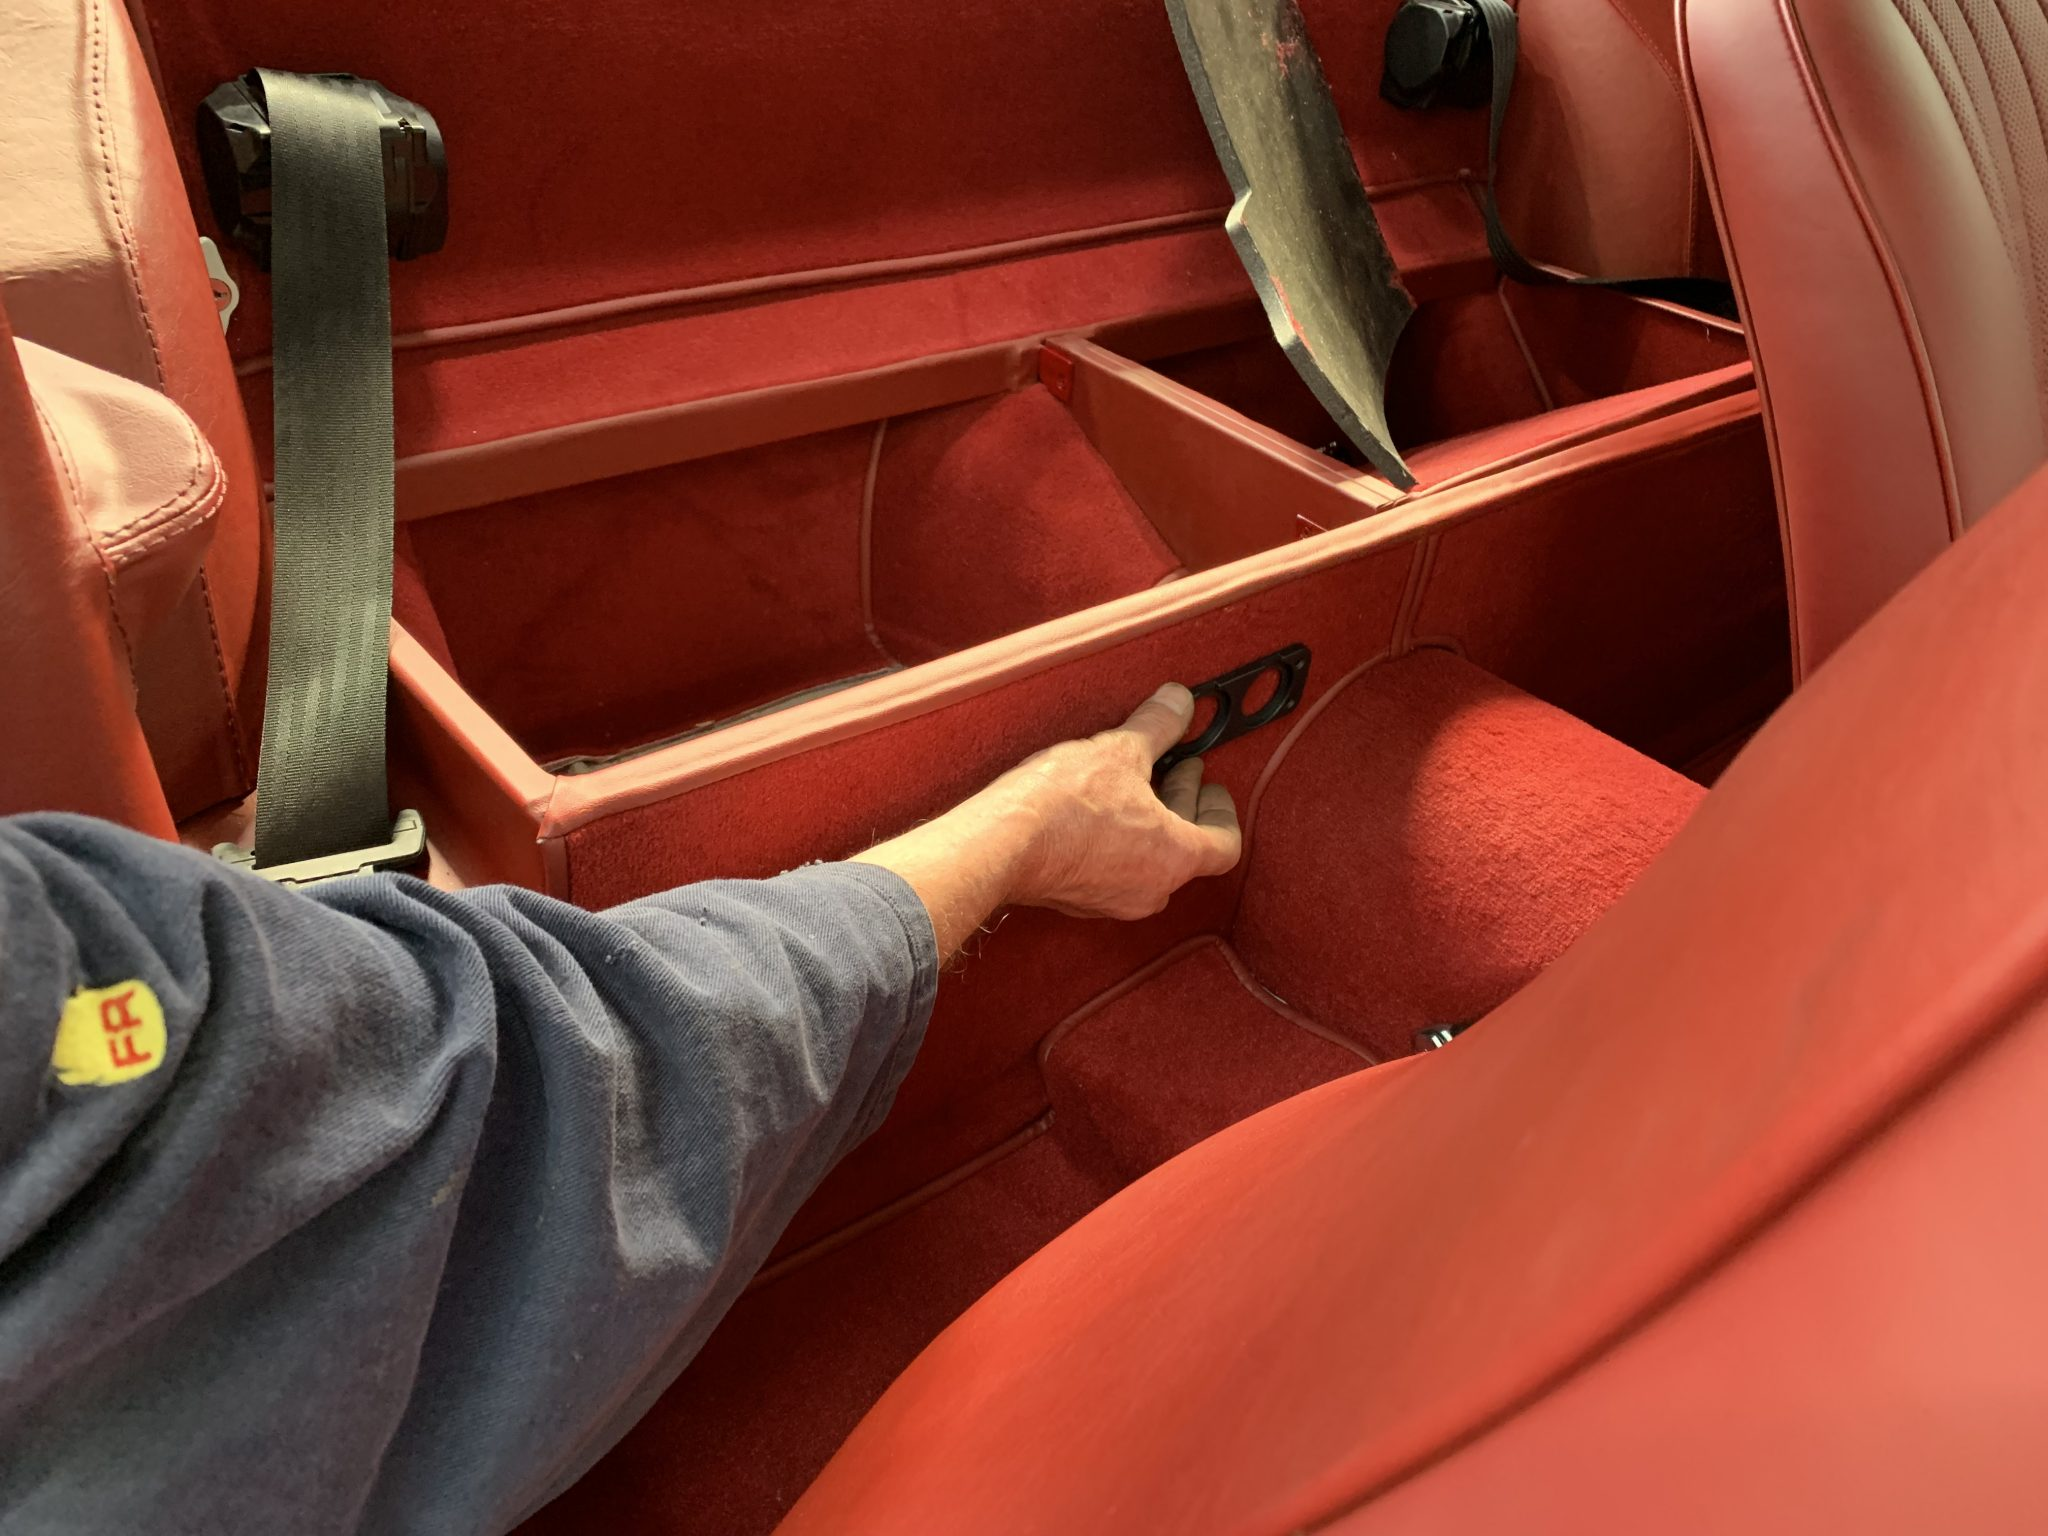 Power to the rear storage compartment